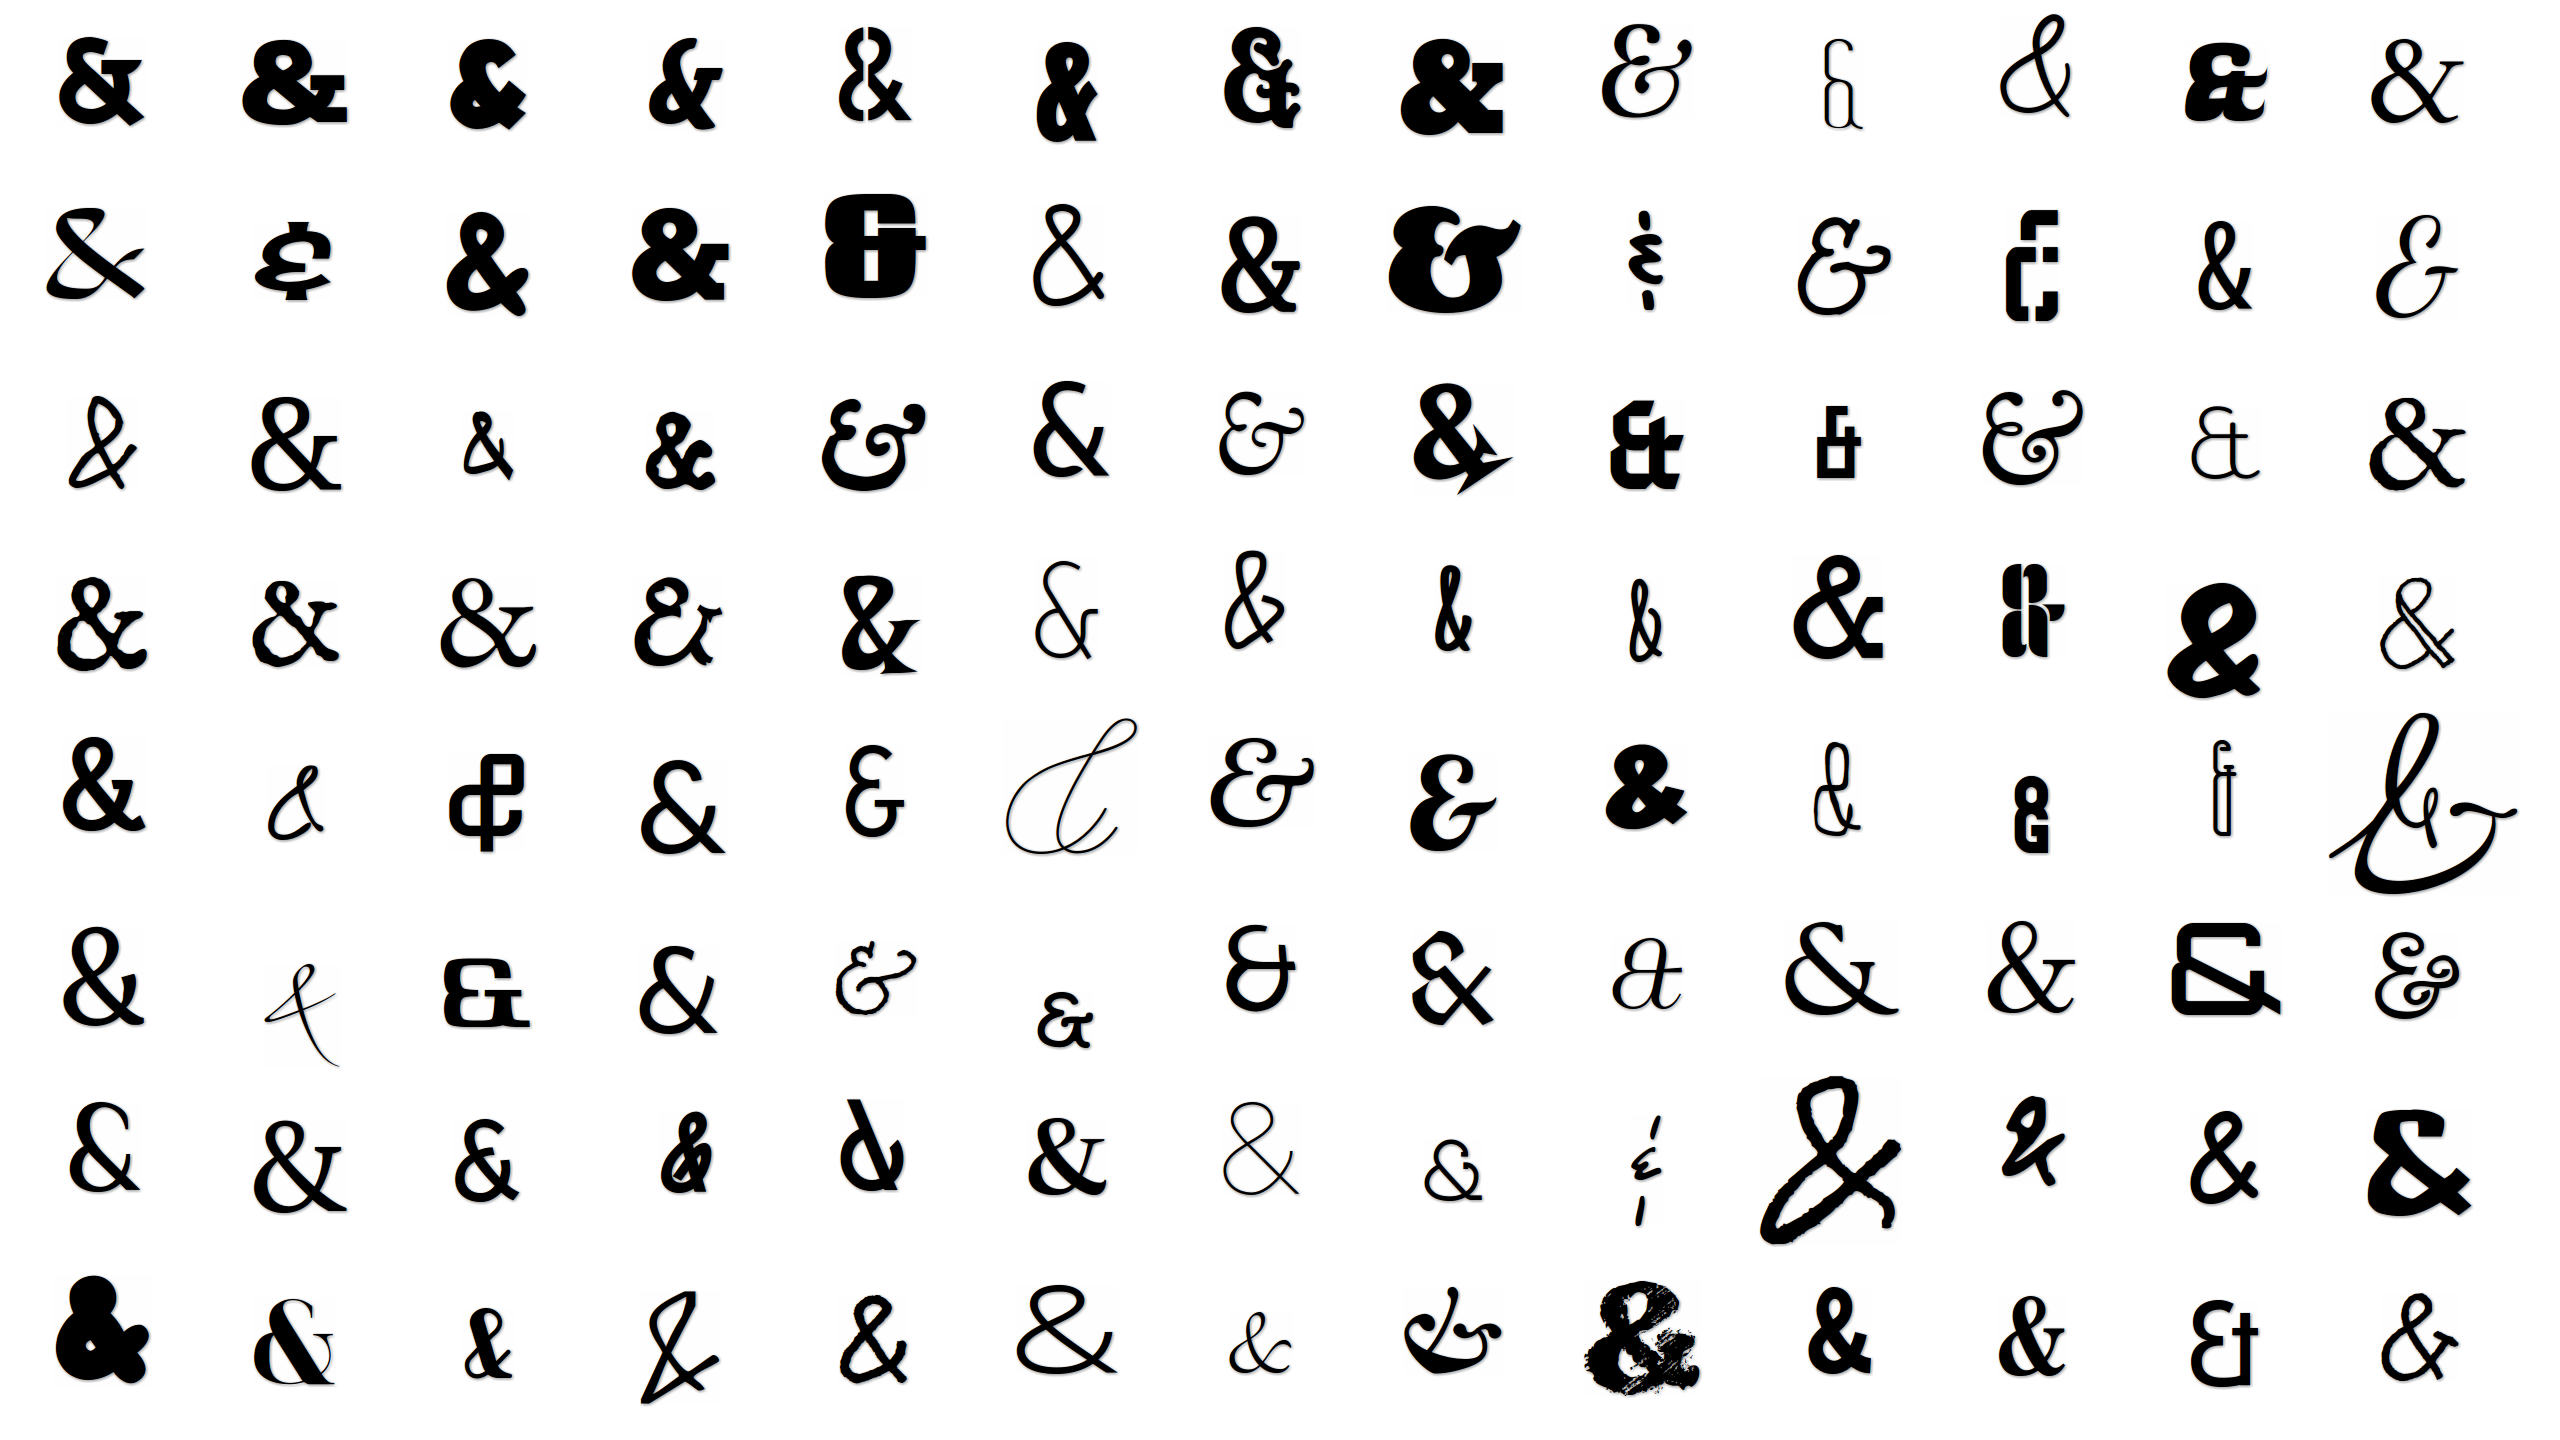 Open source ampersands for the true ampersand aficionado i now offer desktop wallpapers in a variety of sizes biocorpaavc Choice Image